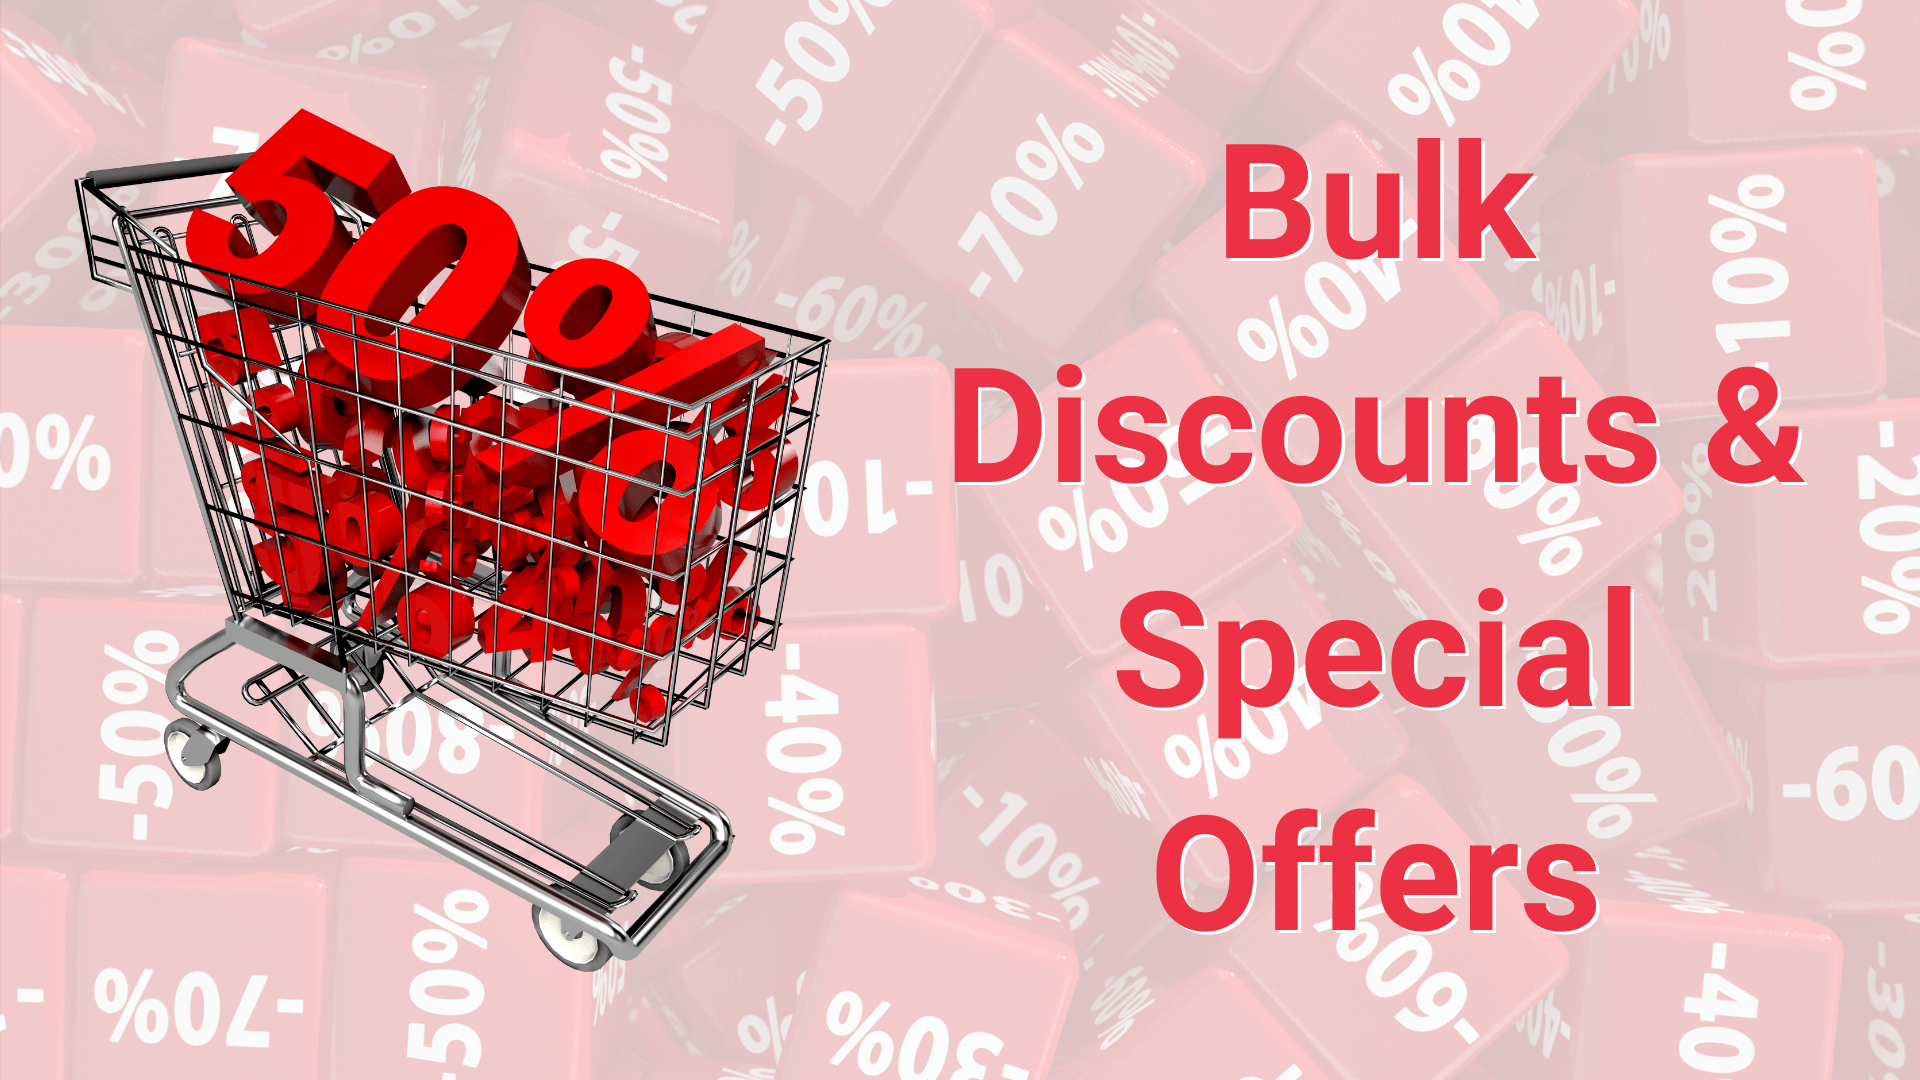 Buying in bulk can save you money on healthy food at the supermarket